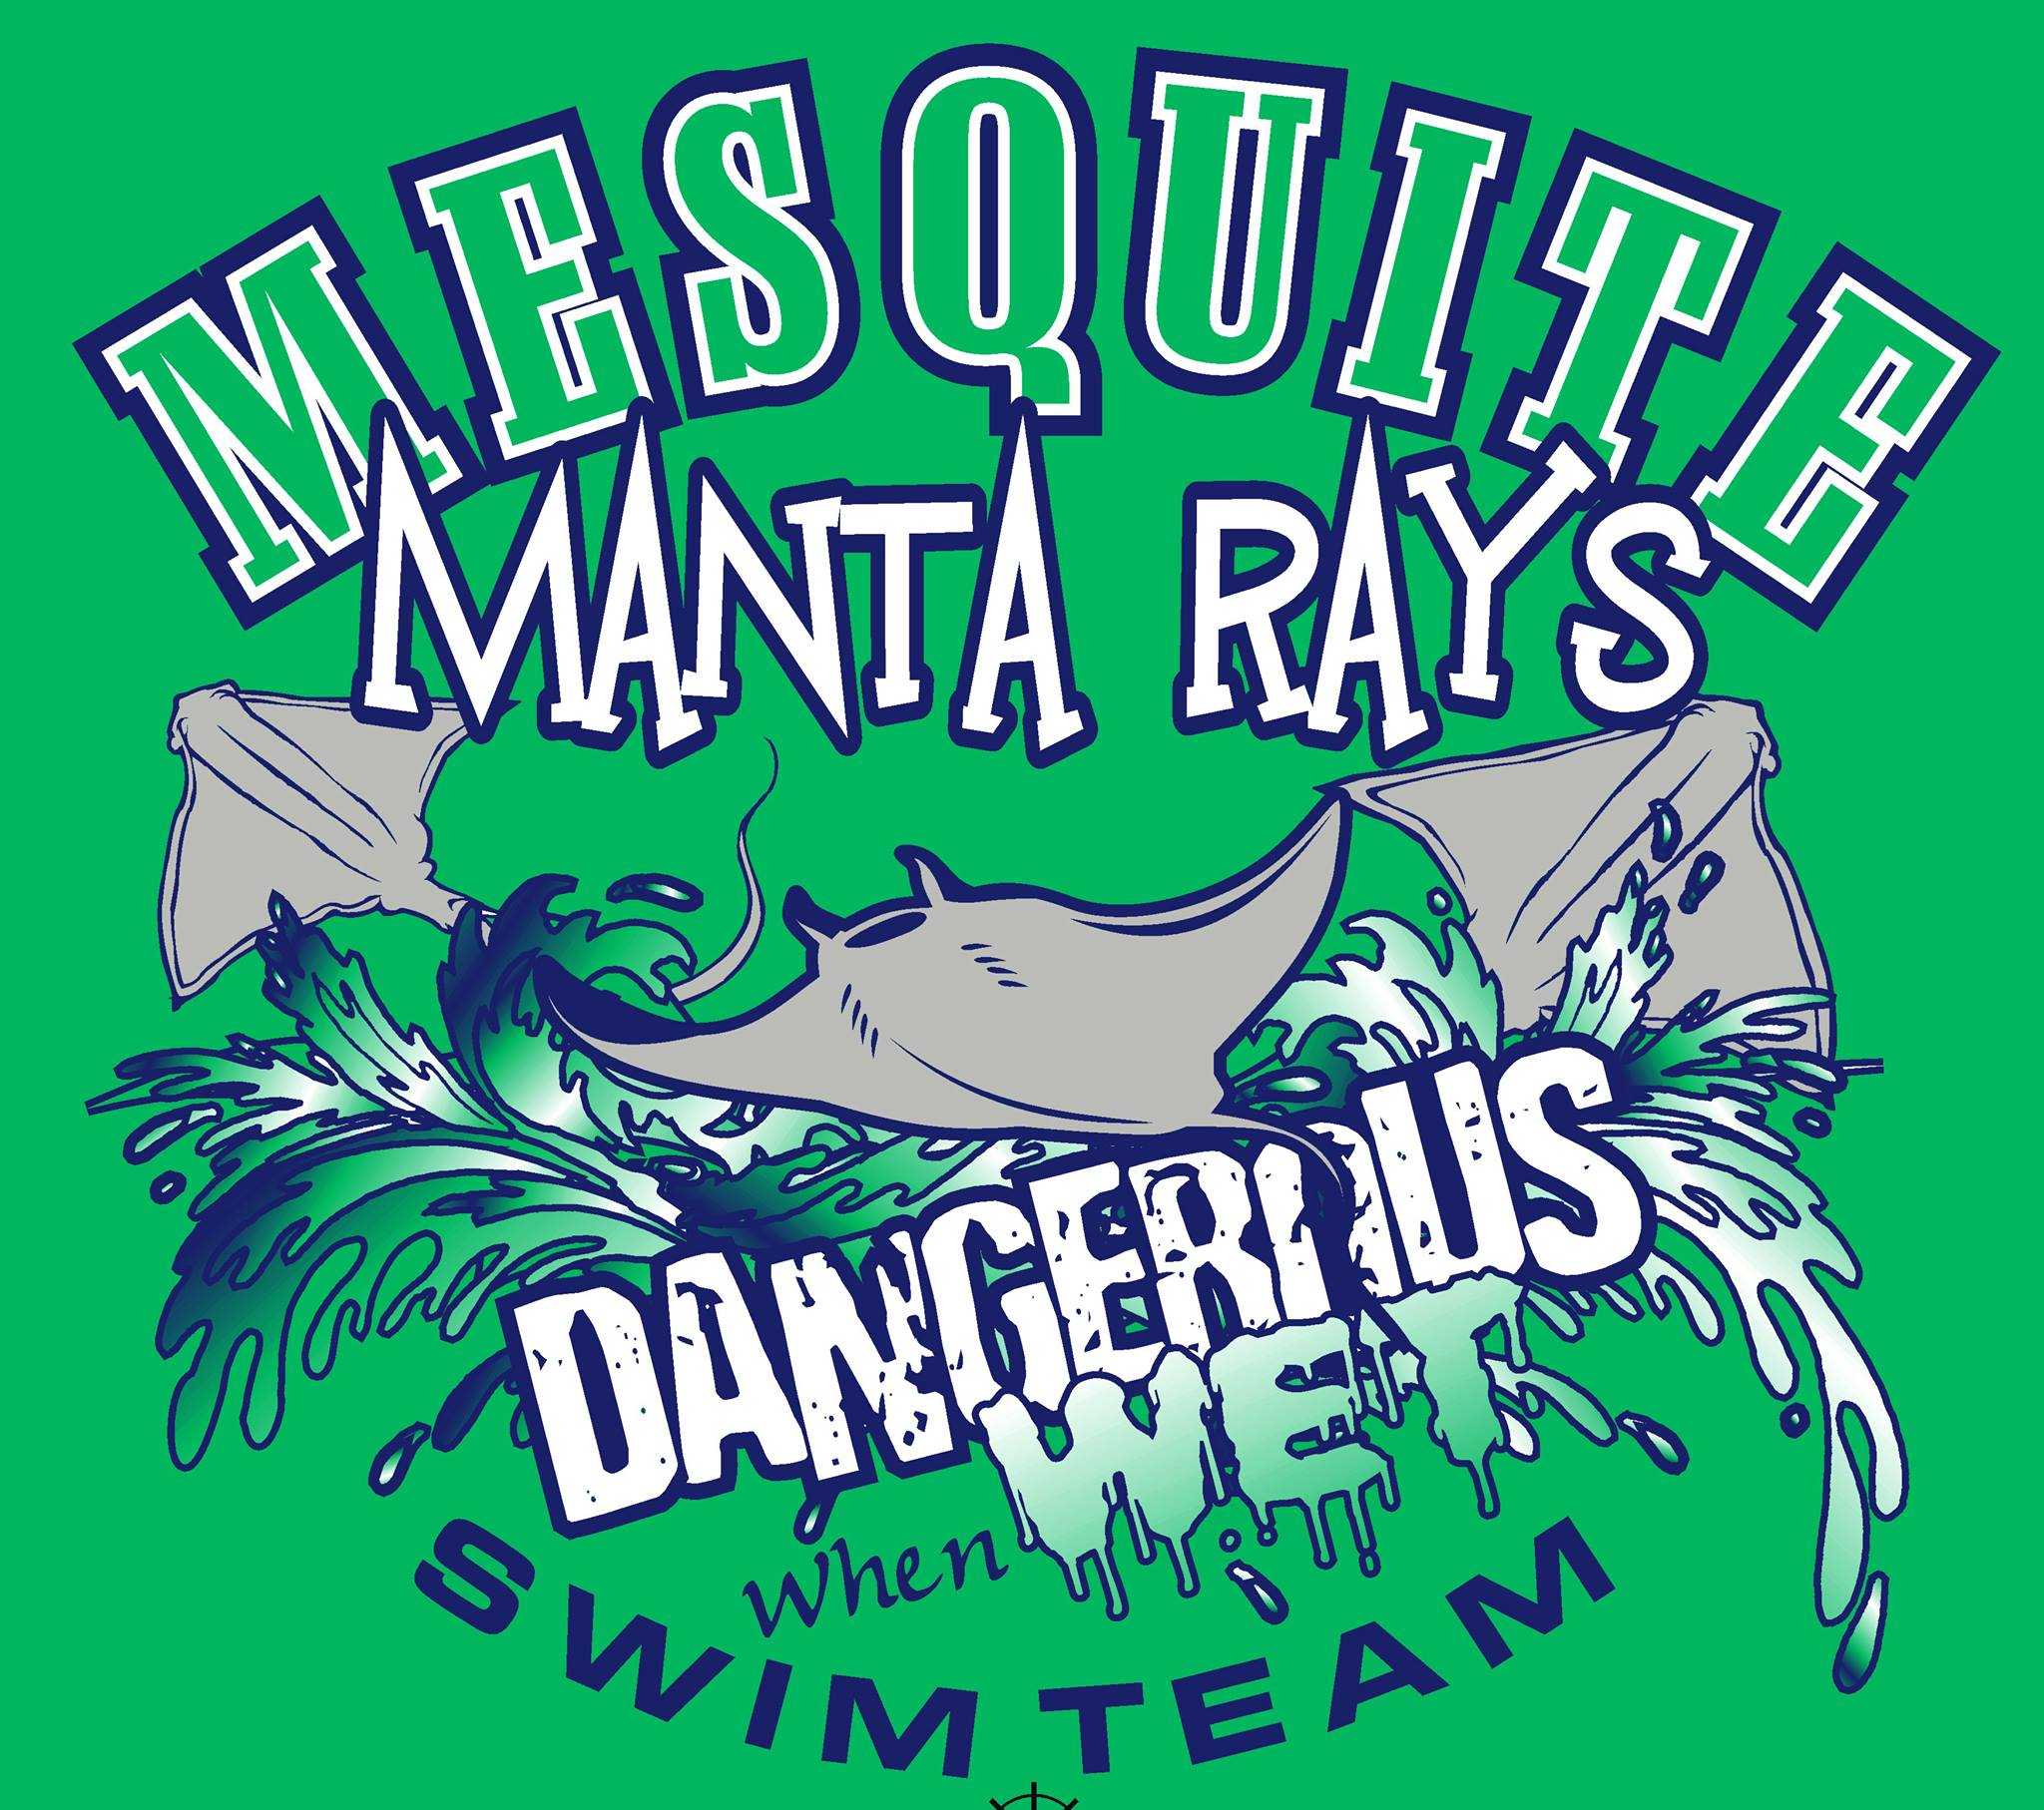 Full Results of Manta Rays' competition June 20